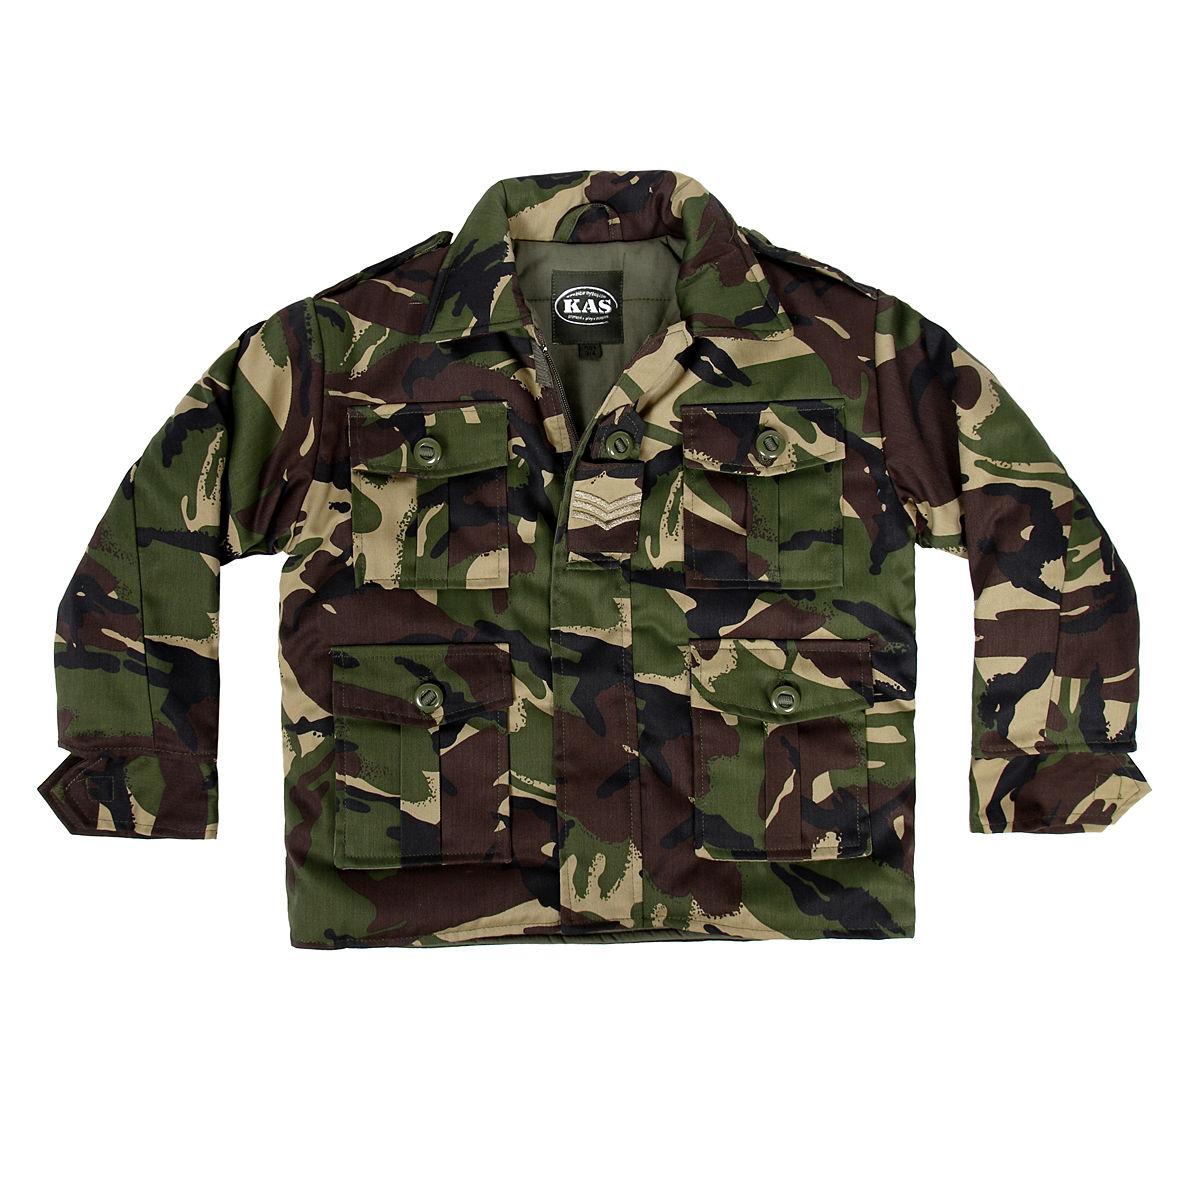 Camo Shirts and Camo Jackets Blend into your environment with camouflage T-shirts that come in both long- and short-sleeve options and an array of camo patterns, so you can pick the design that best matches your preferred hunting landscape.